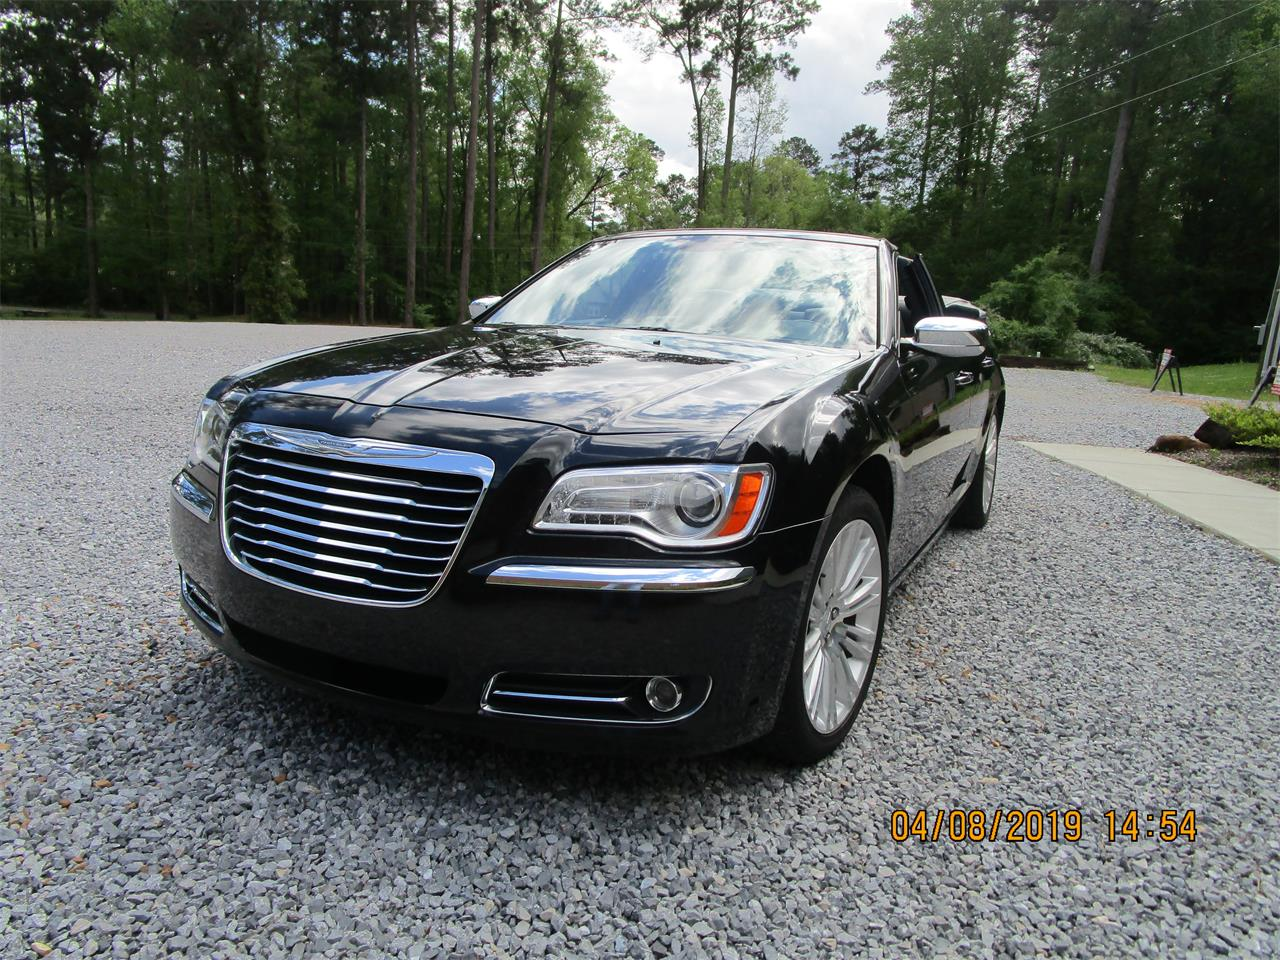 2011 Chrysler 300 for sale in Summit, MS – photo 3